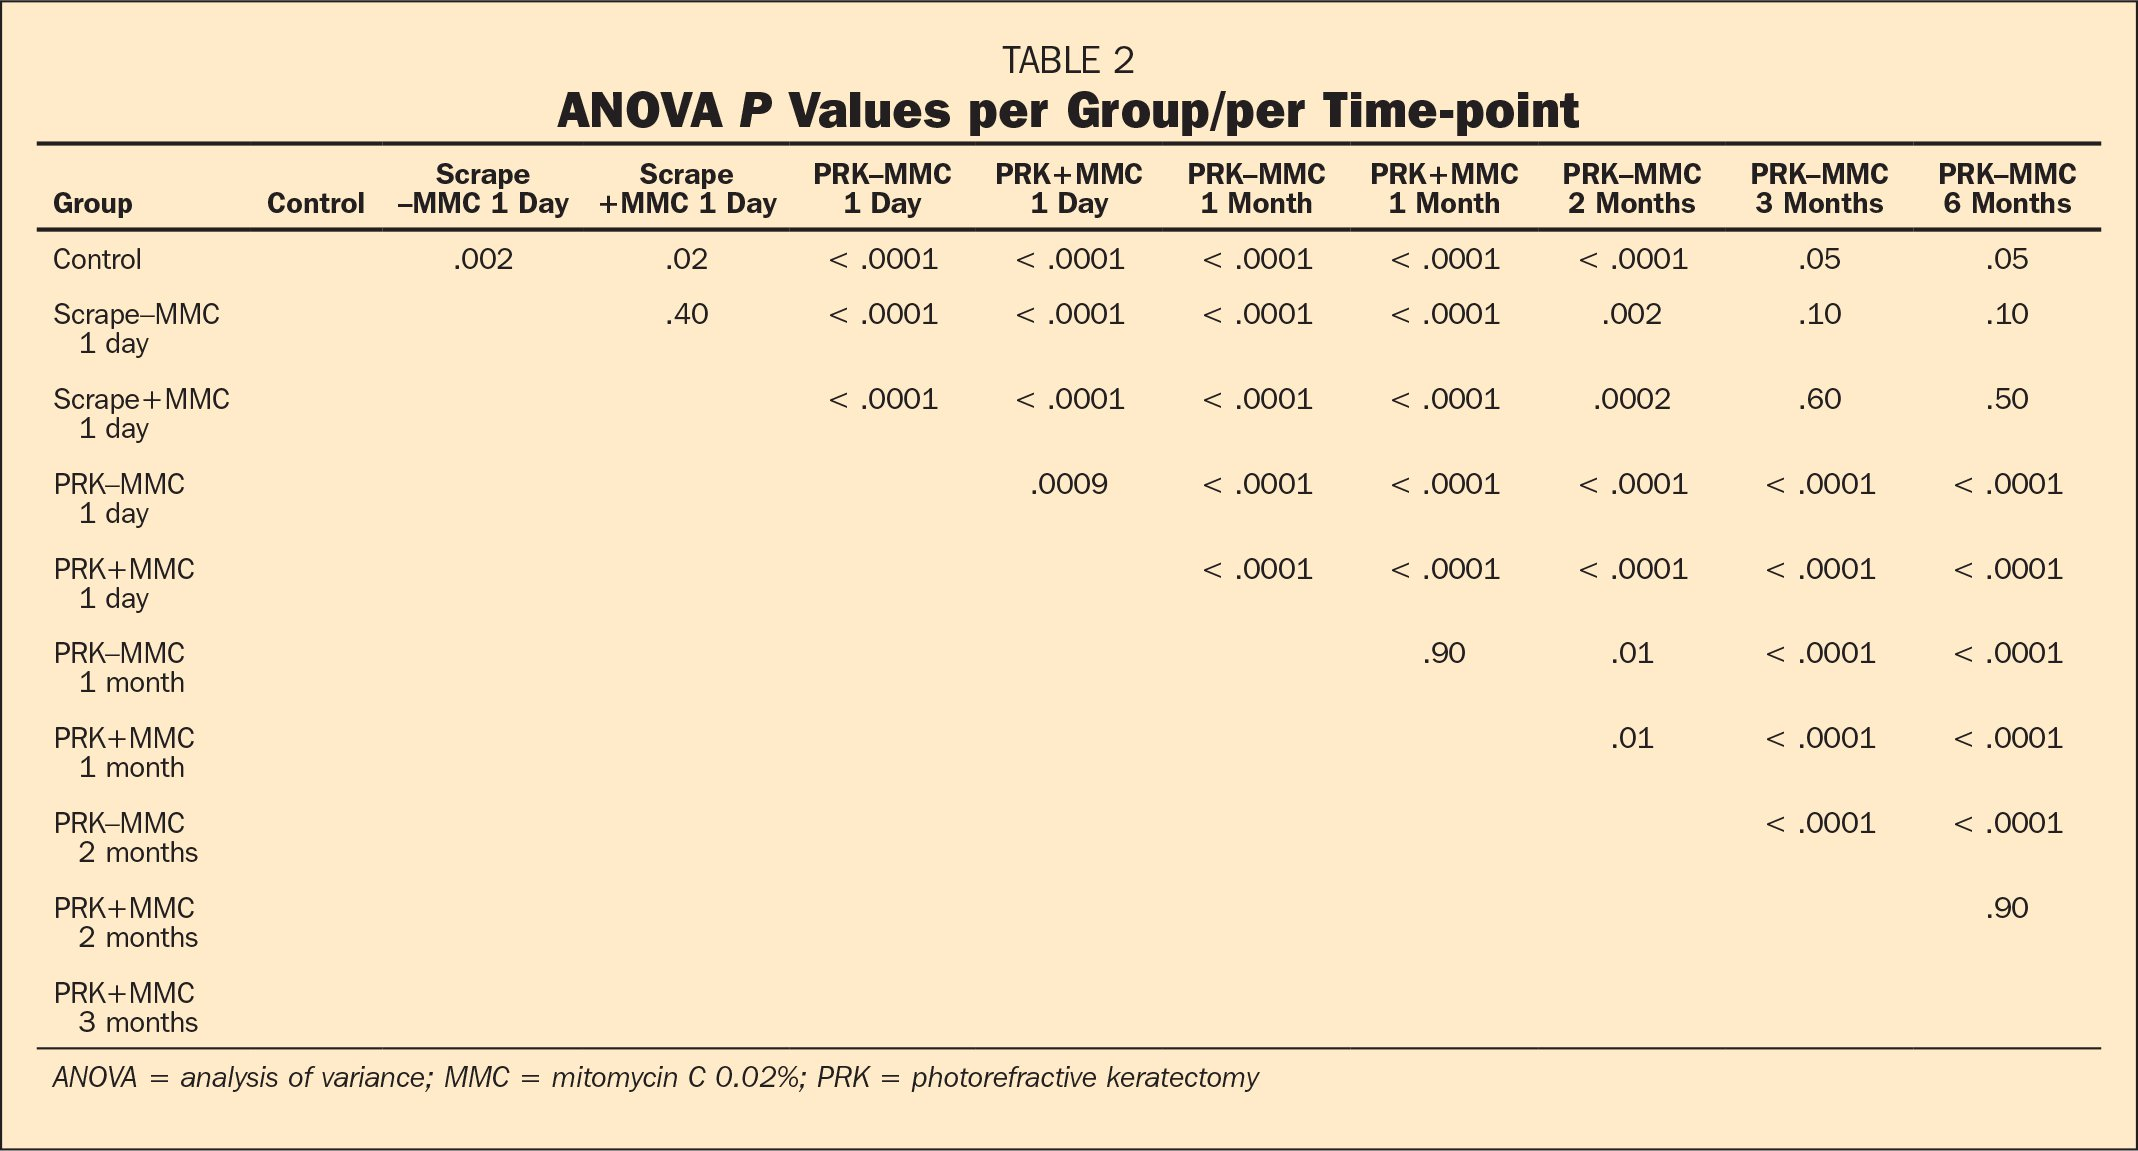 ANOVA P Values per Group/per Time-point